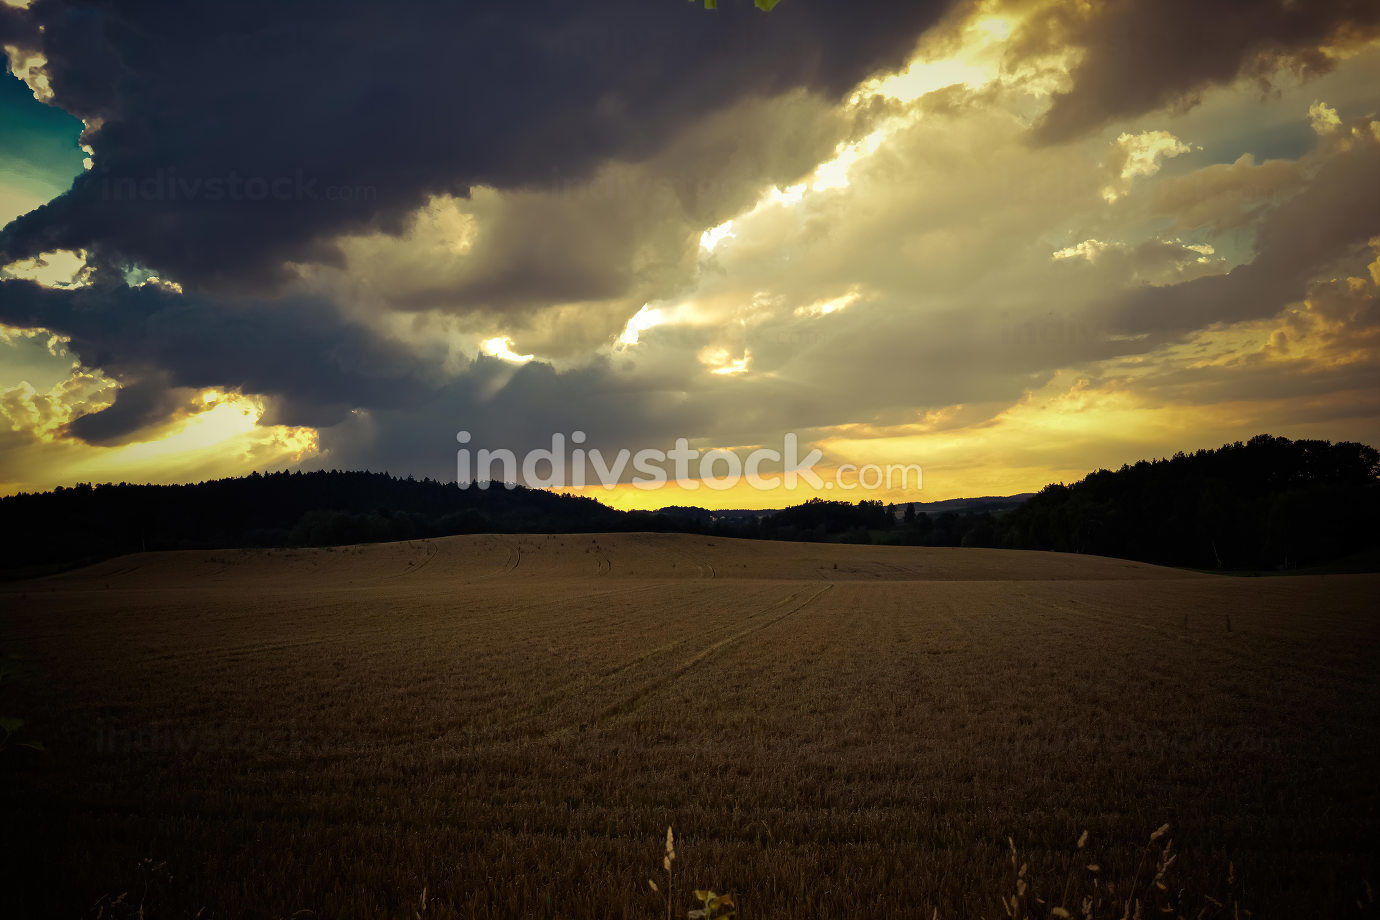 a field in autumn in the sunset